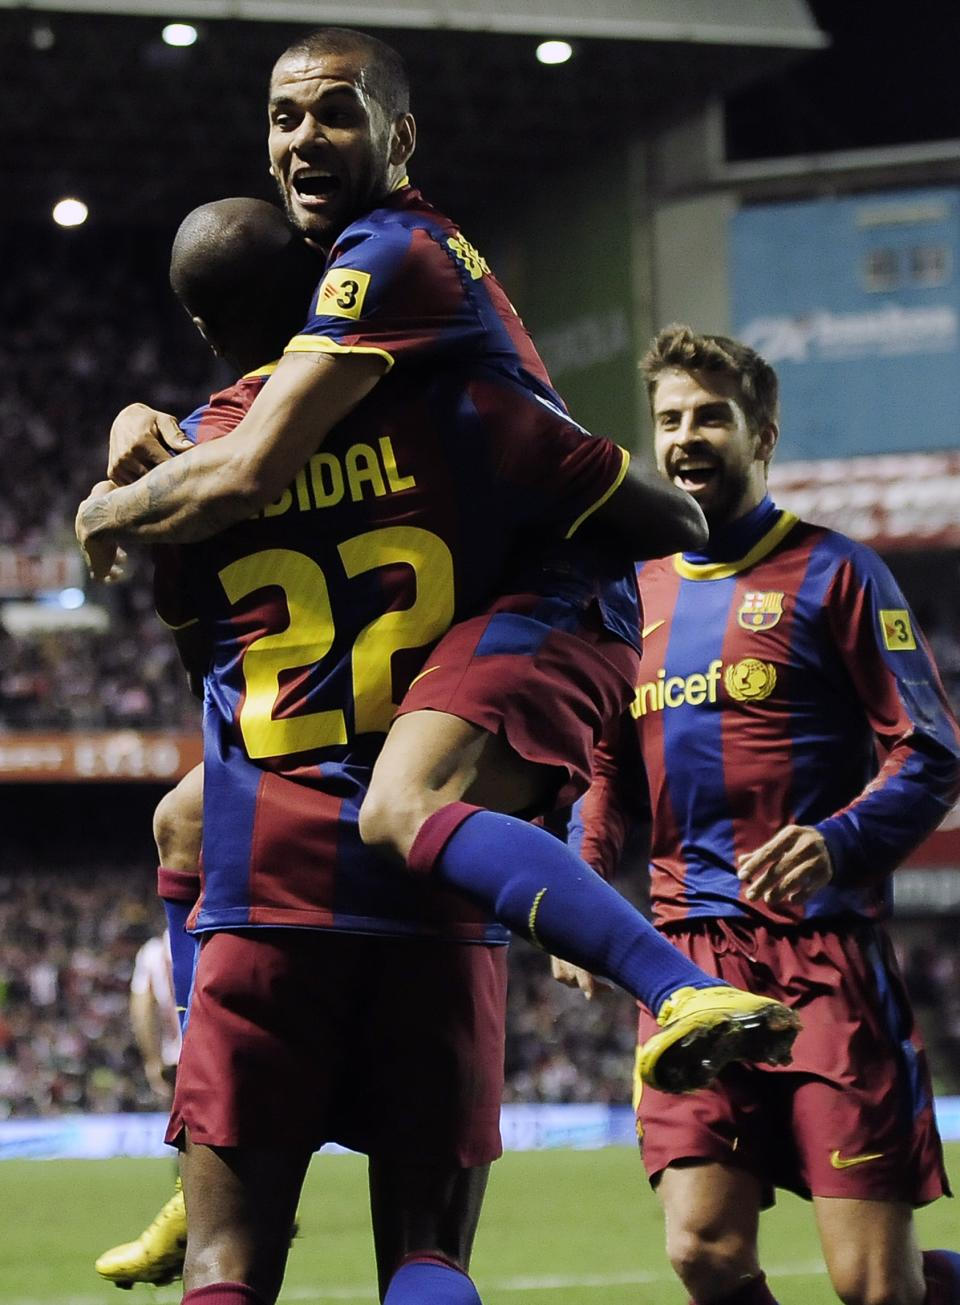 Barcelona's Eric Abidal from France, left, is congratulated by his fellow teammate, Daniel Alves from Brazil, right, after scored against Athletic Bilbao during their Spanish second-leg Copa del Rey soccer match at San Mames stadium in Bilbao northern Spain, Wednesday Jan. 5, 2011. (AP Photo/Alvaro Barrientos)